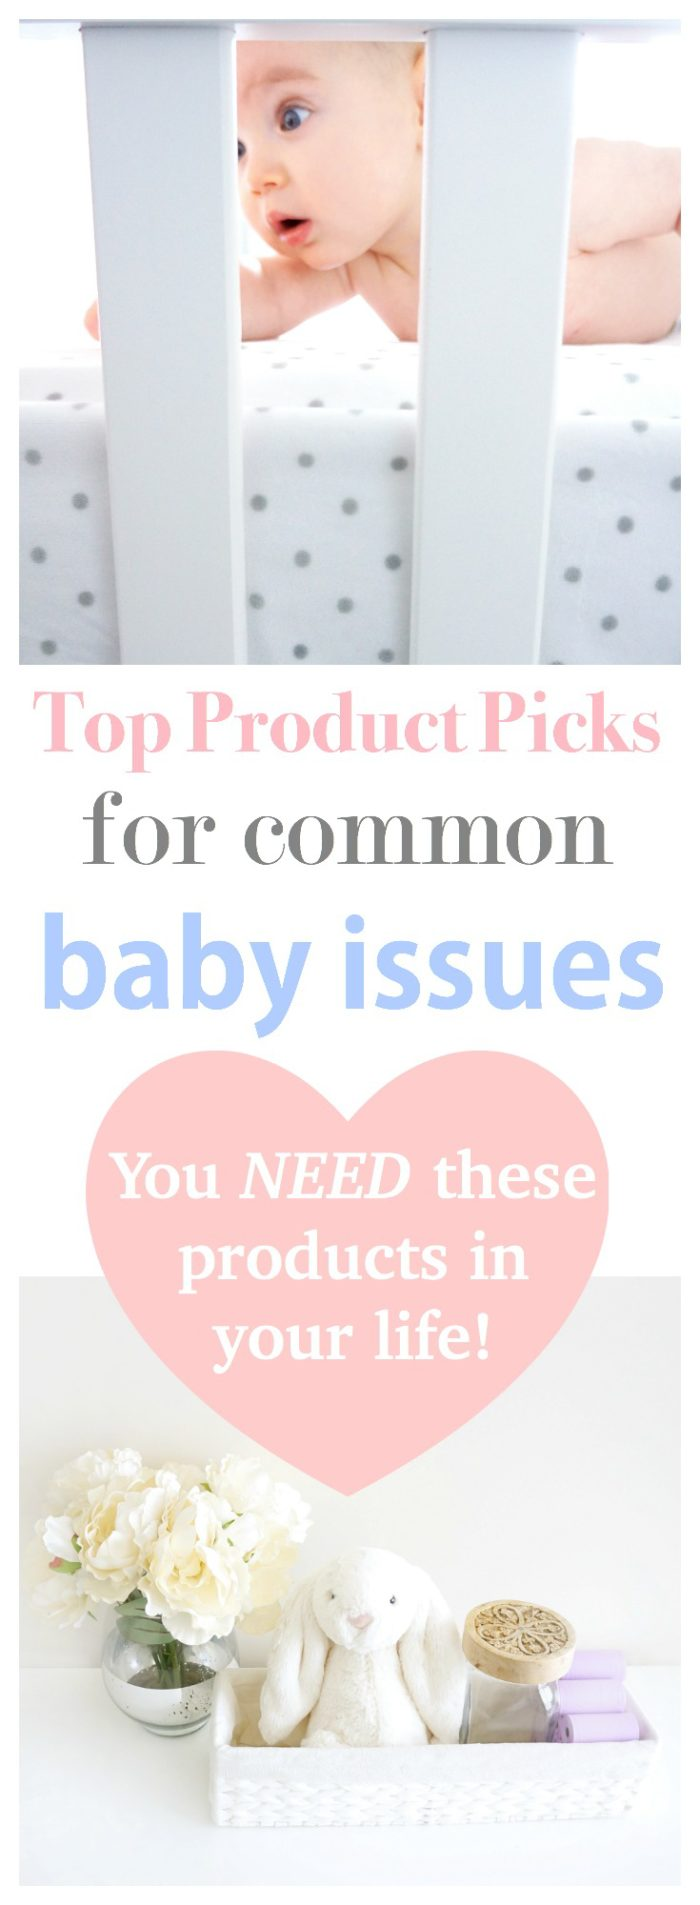 Top Product Picks for Common Baby Issues